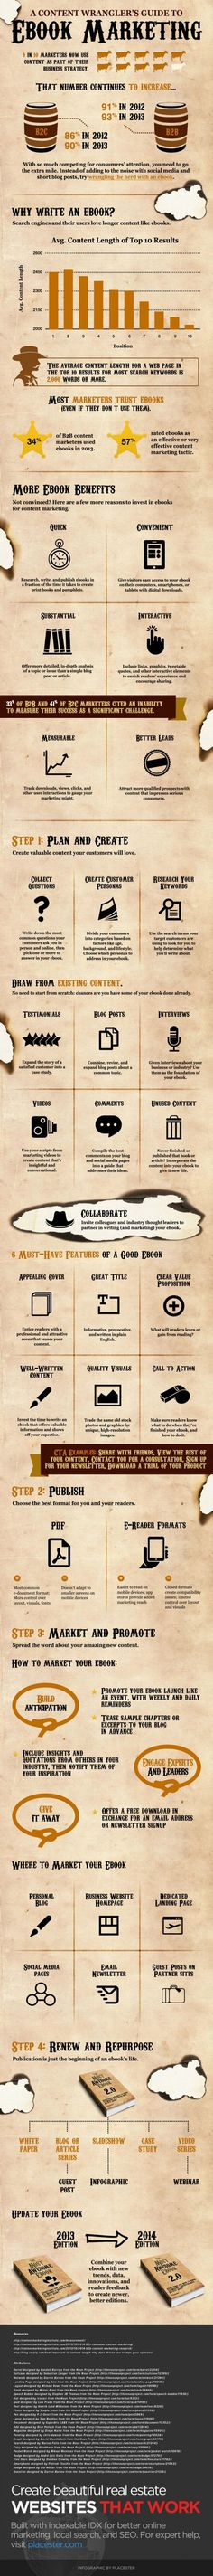 28 Awesome Tips for Creating & Marketing eBooks [INFOGRAPHIC]